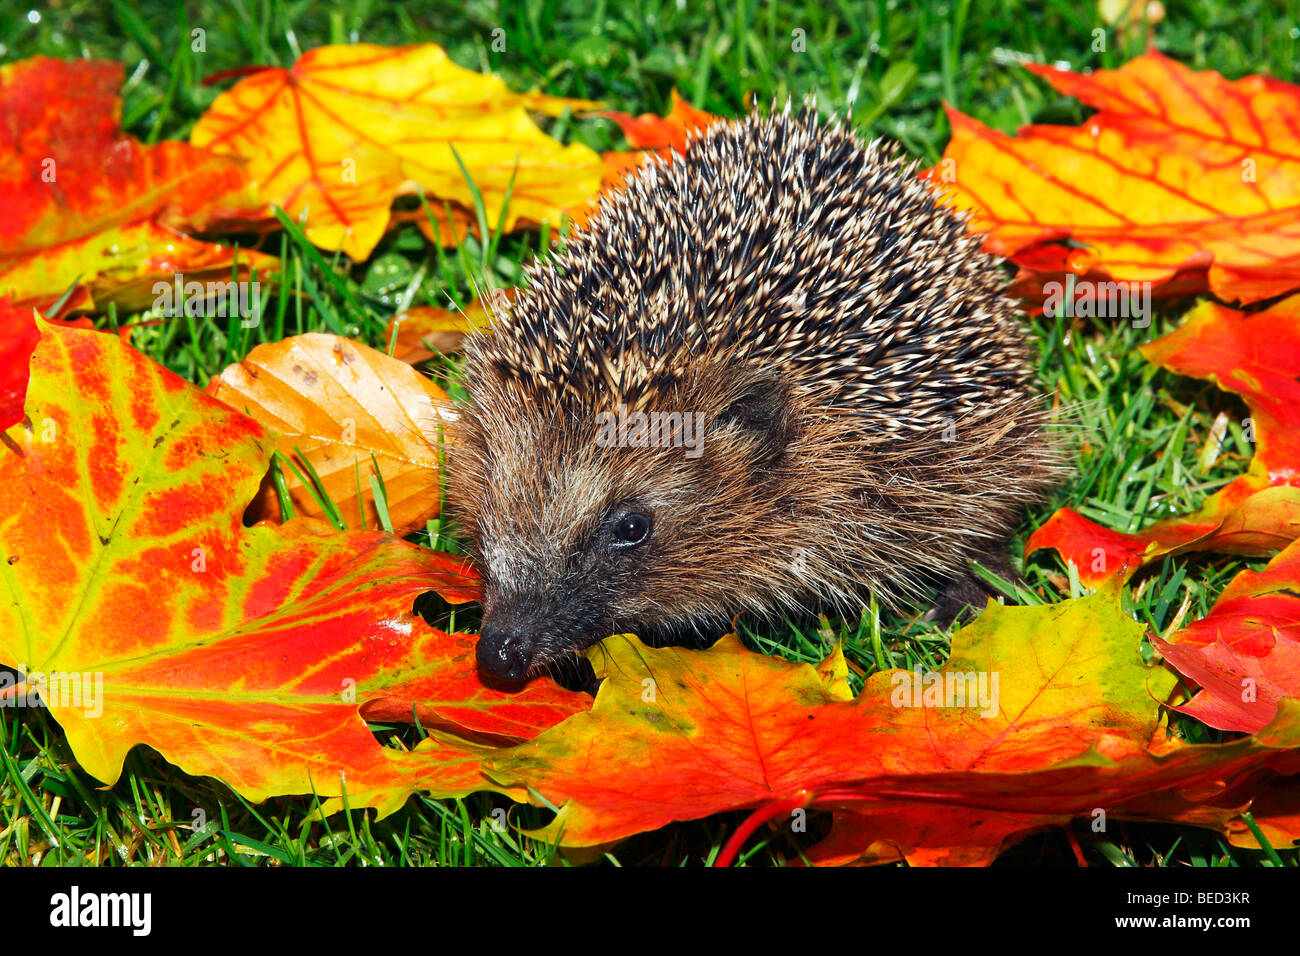 Young West European hedgehog, European Hedgehog (Erinaceus europaeus), in colourful autumn foliage, maple leaves - Stock Image